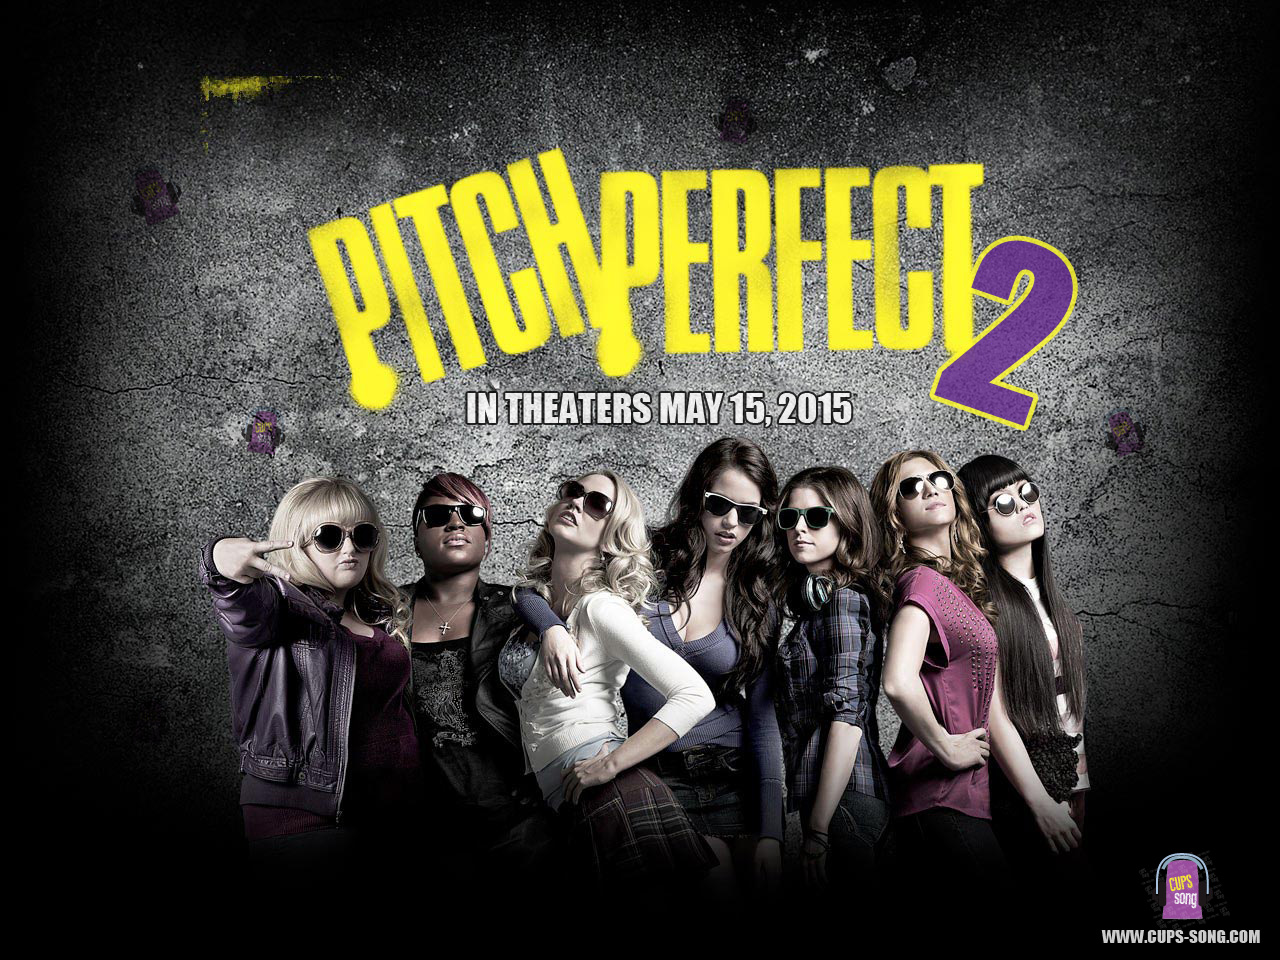 One Mann S Movies Film Review Pitch Perfect 2 2015 One Mann S Movies